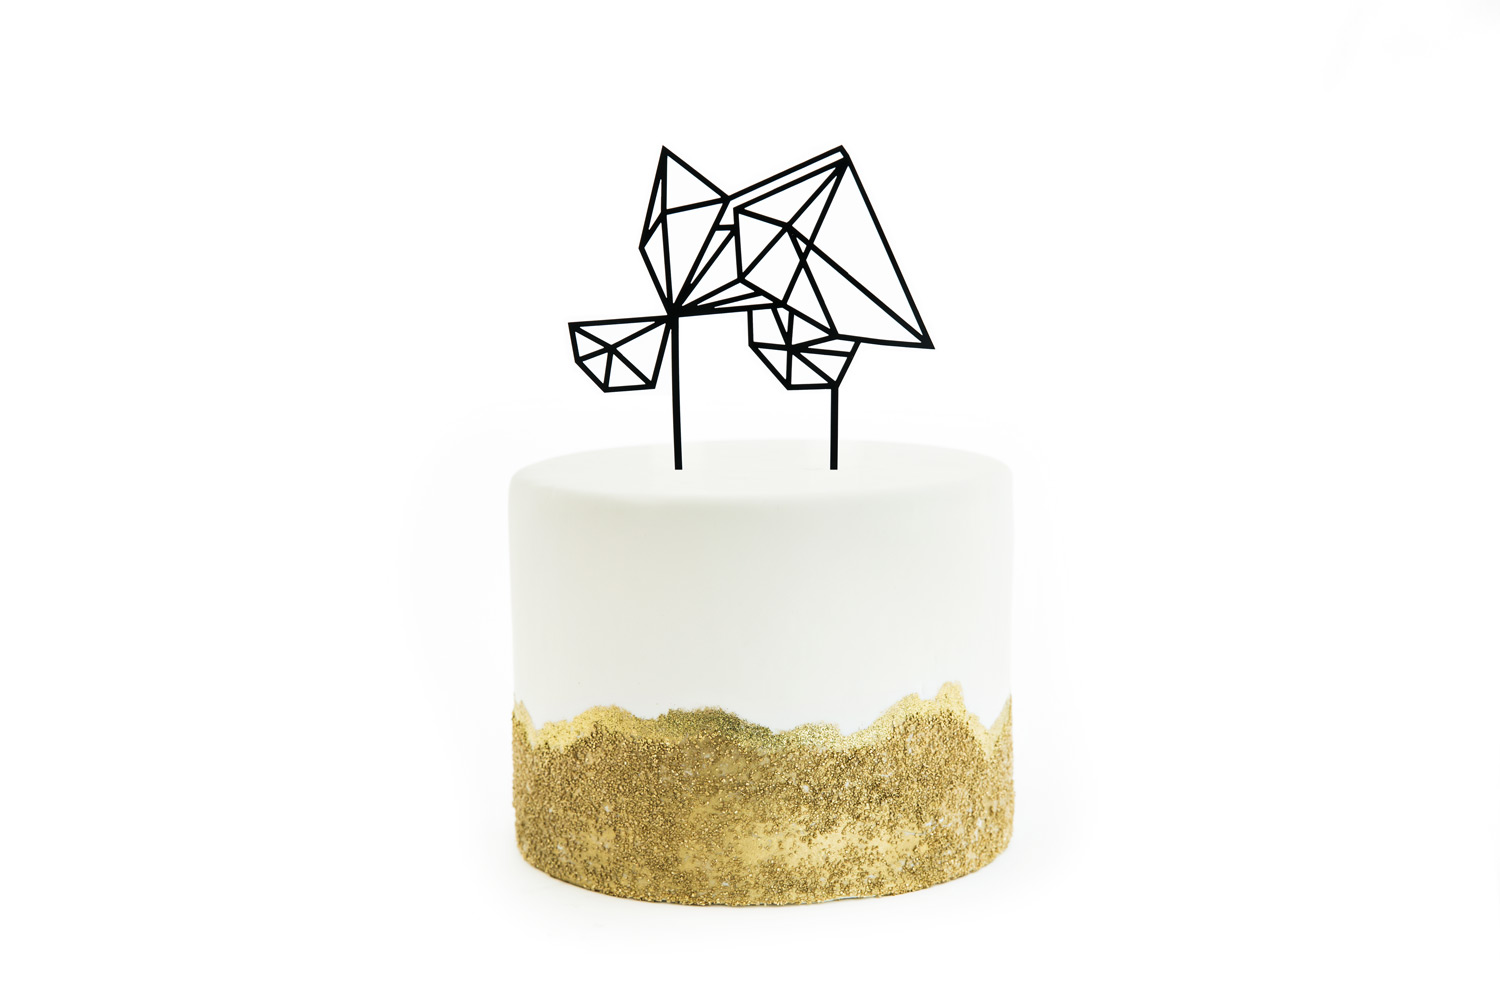 Black diamond geometric laser cut acrylic cake topper by The Roc Shop on top of a white cake with gold glitter, #WeddingMinimalismProject by Cavin Elizabeth Photography